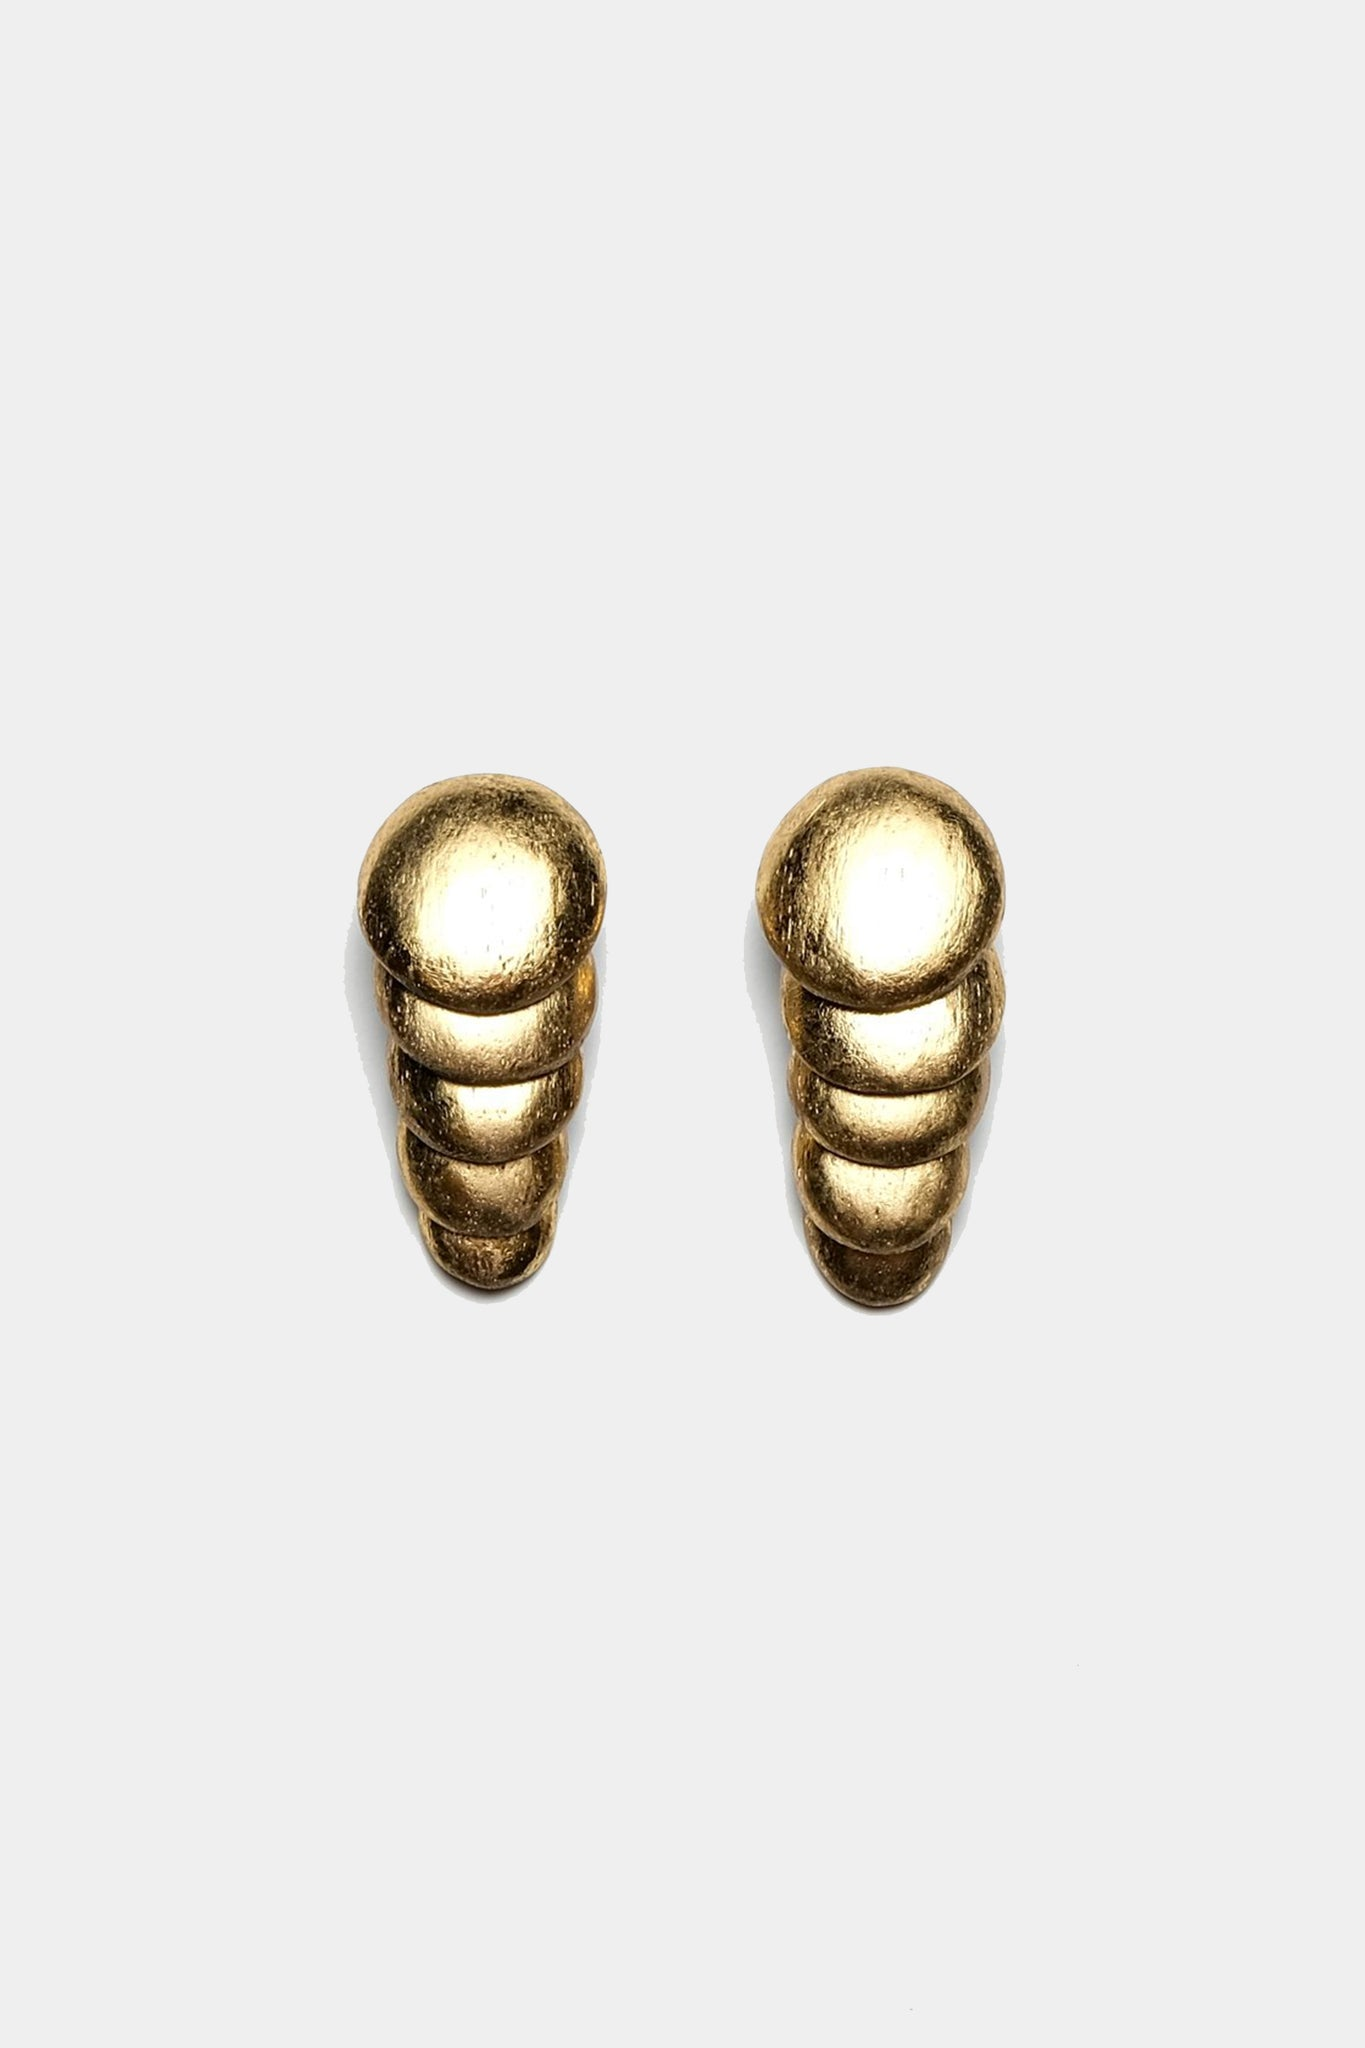 MONIES - ACACIA+GOLD FOIL EARRINGS, gold